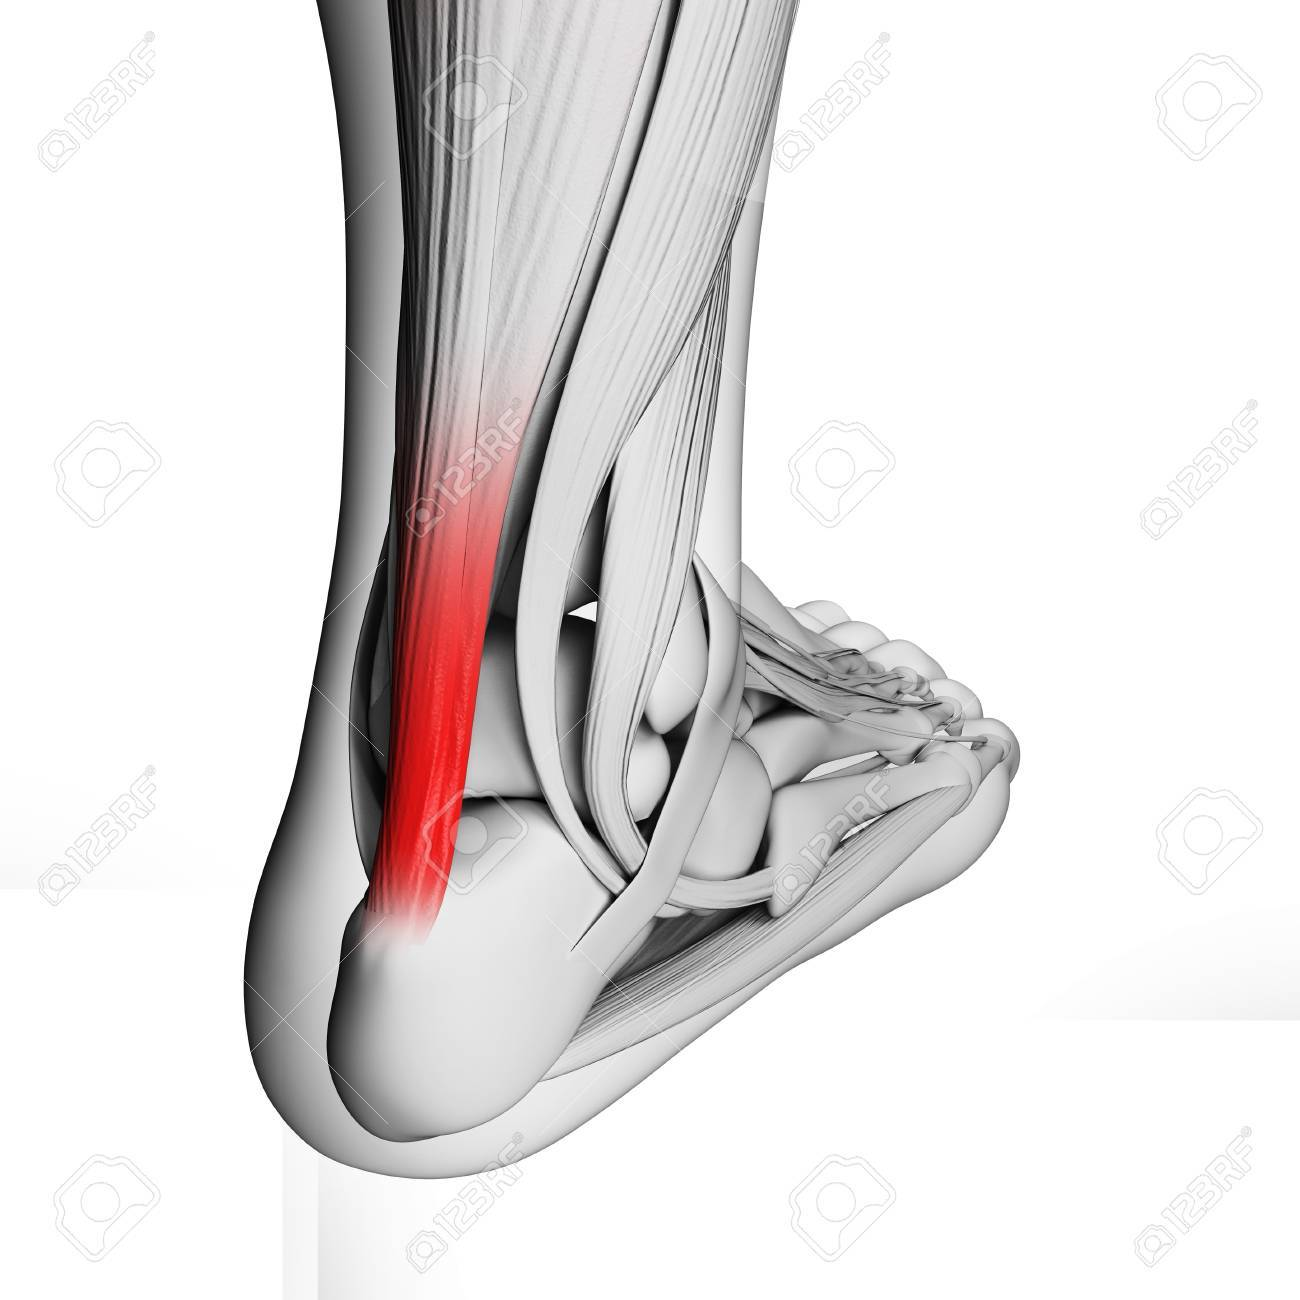 Achilles Tendon, Illustration Stock Photo, Picture And Royalty Free ...